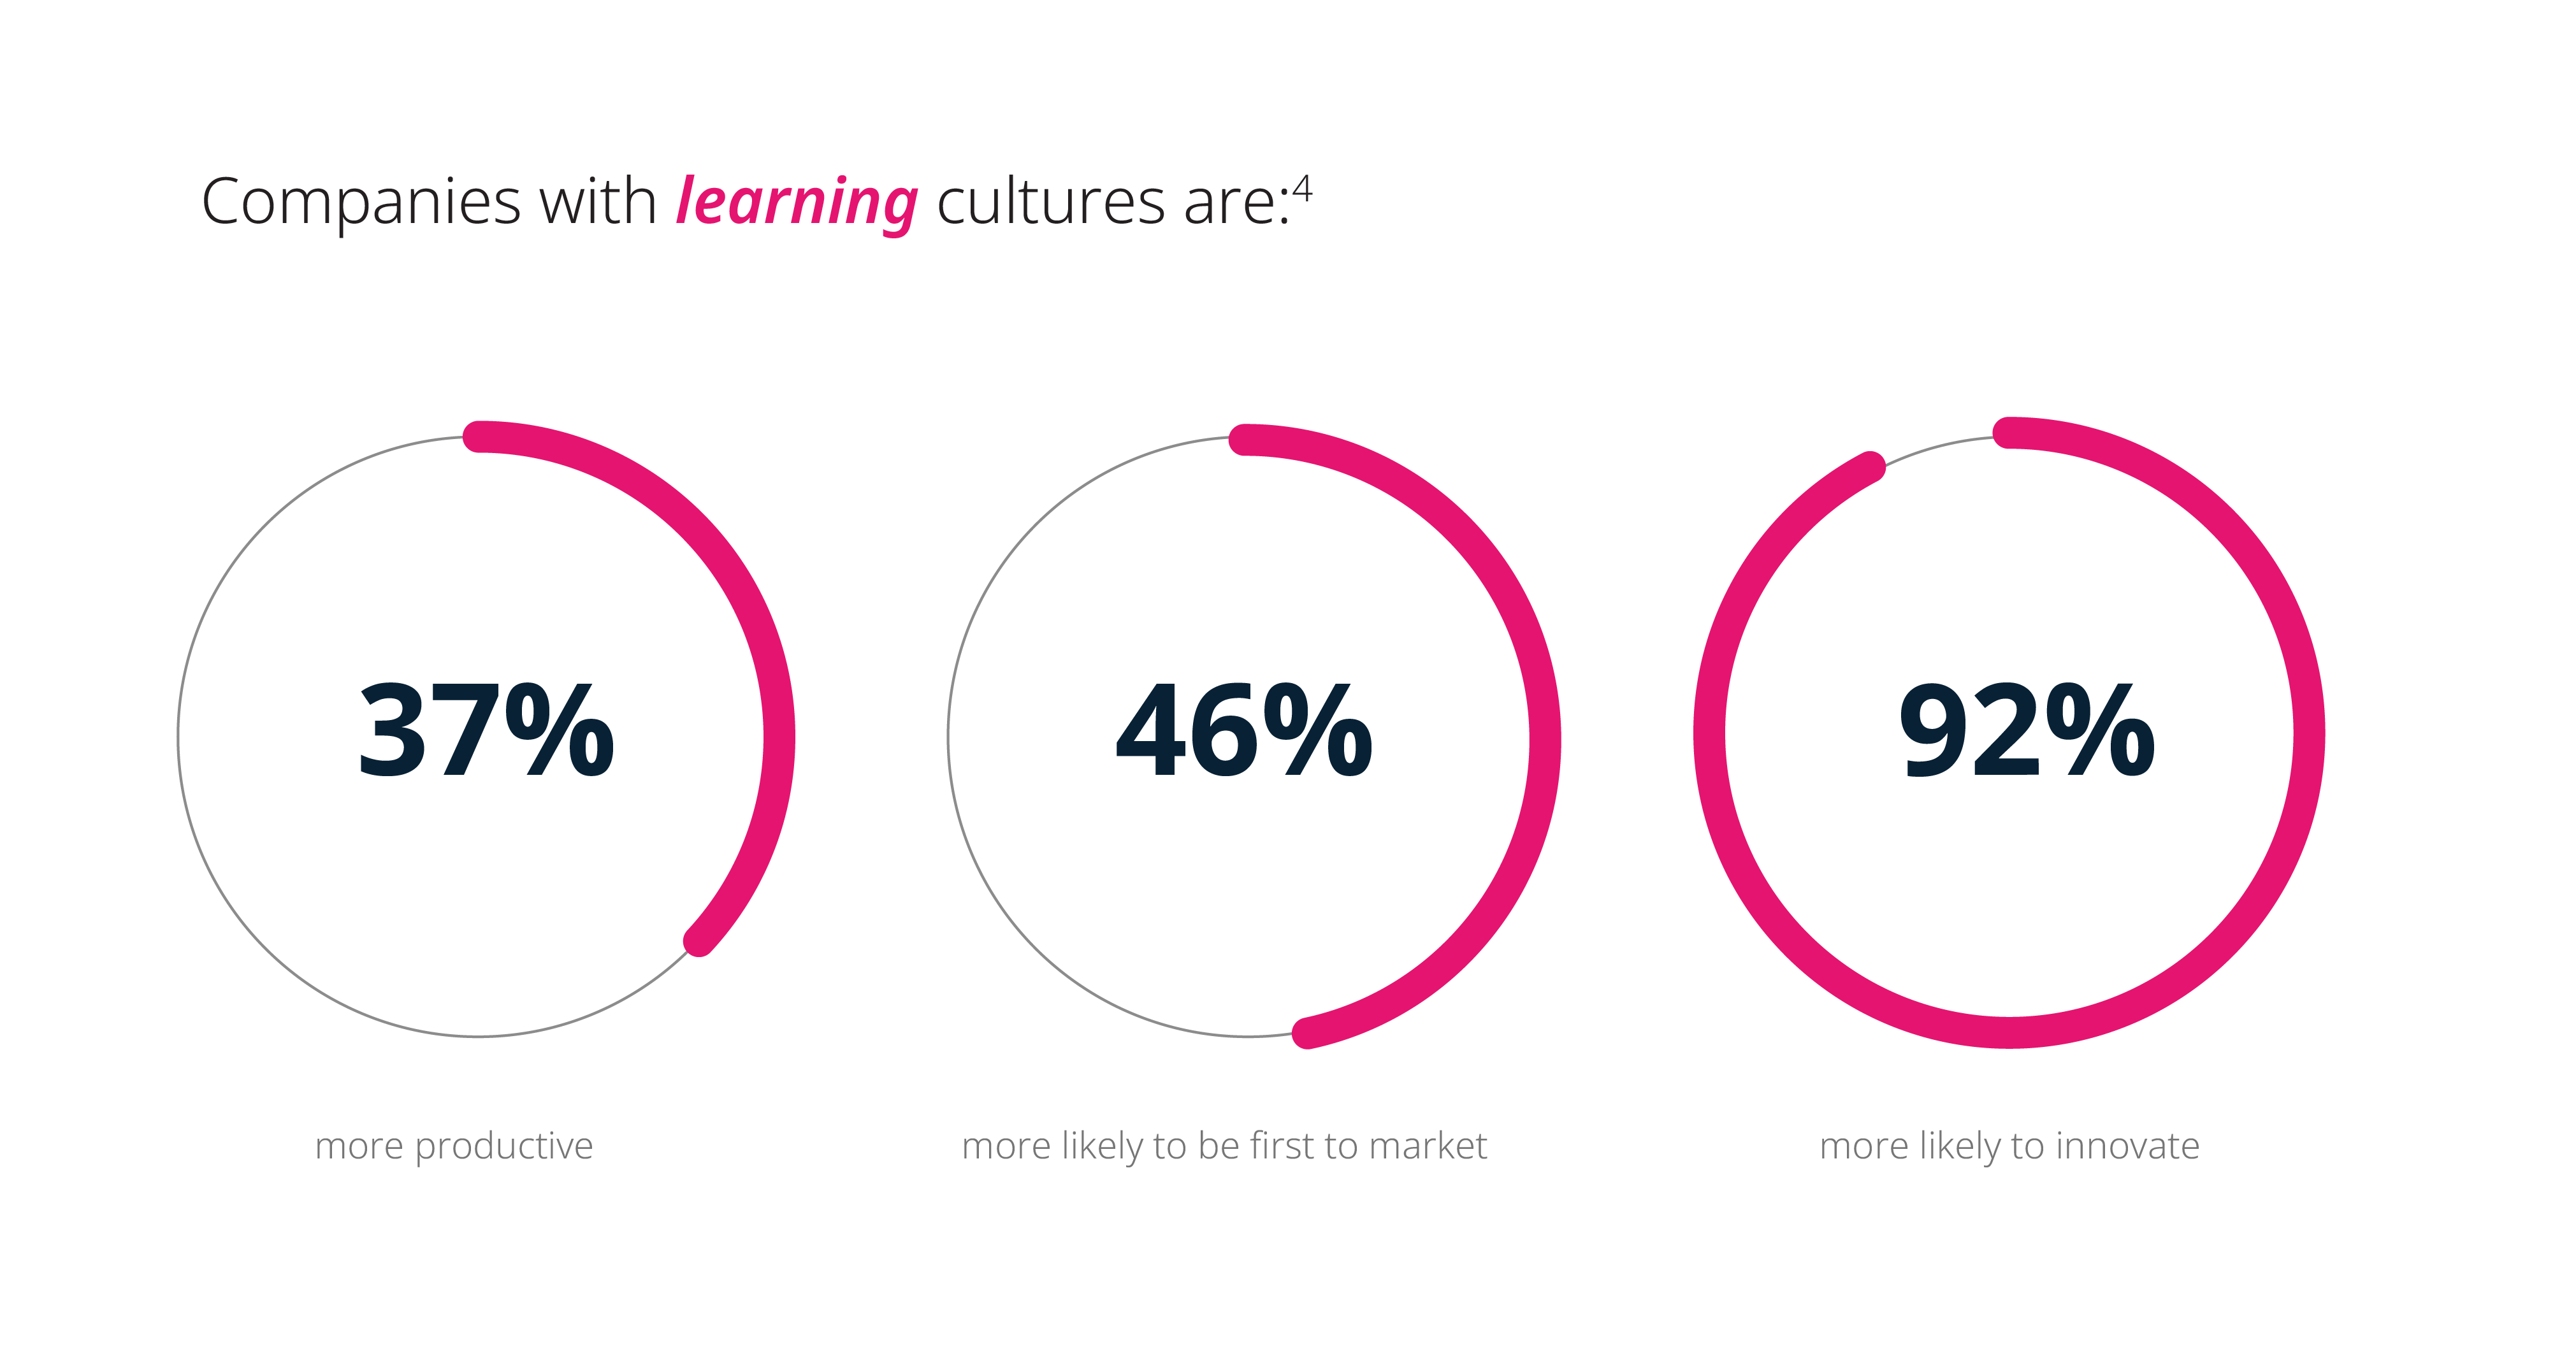 Companies with learning cultures are more productive, more likely to be first to market and more likely to innovate